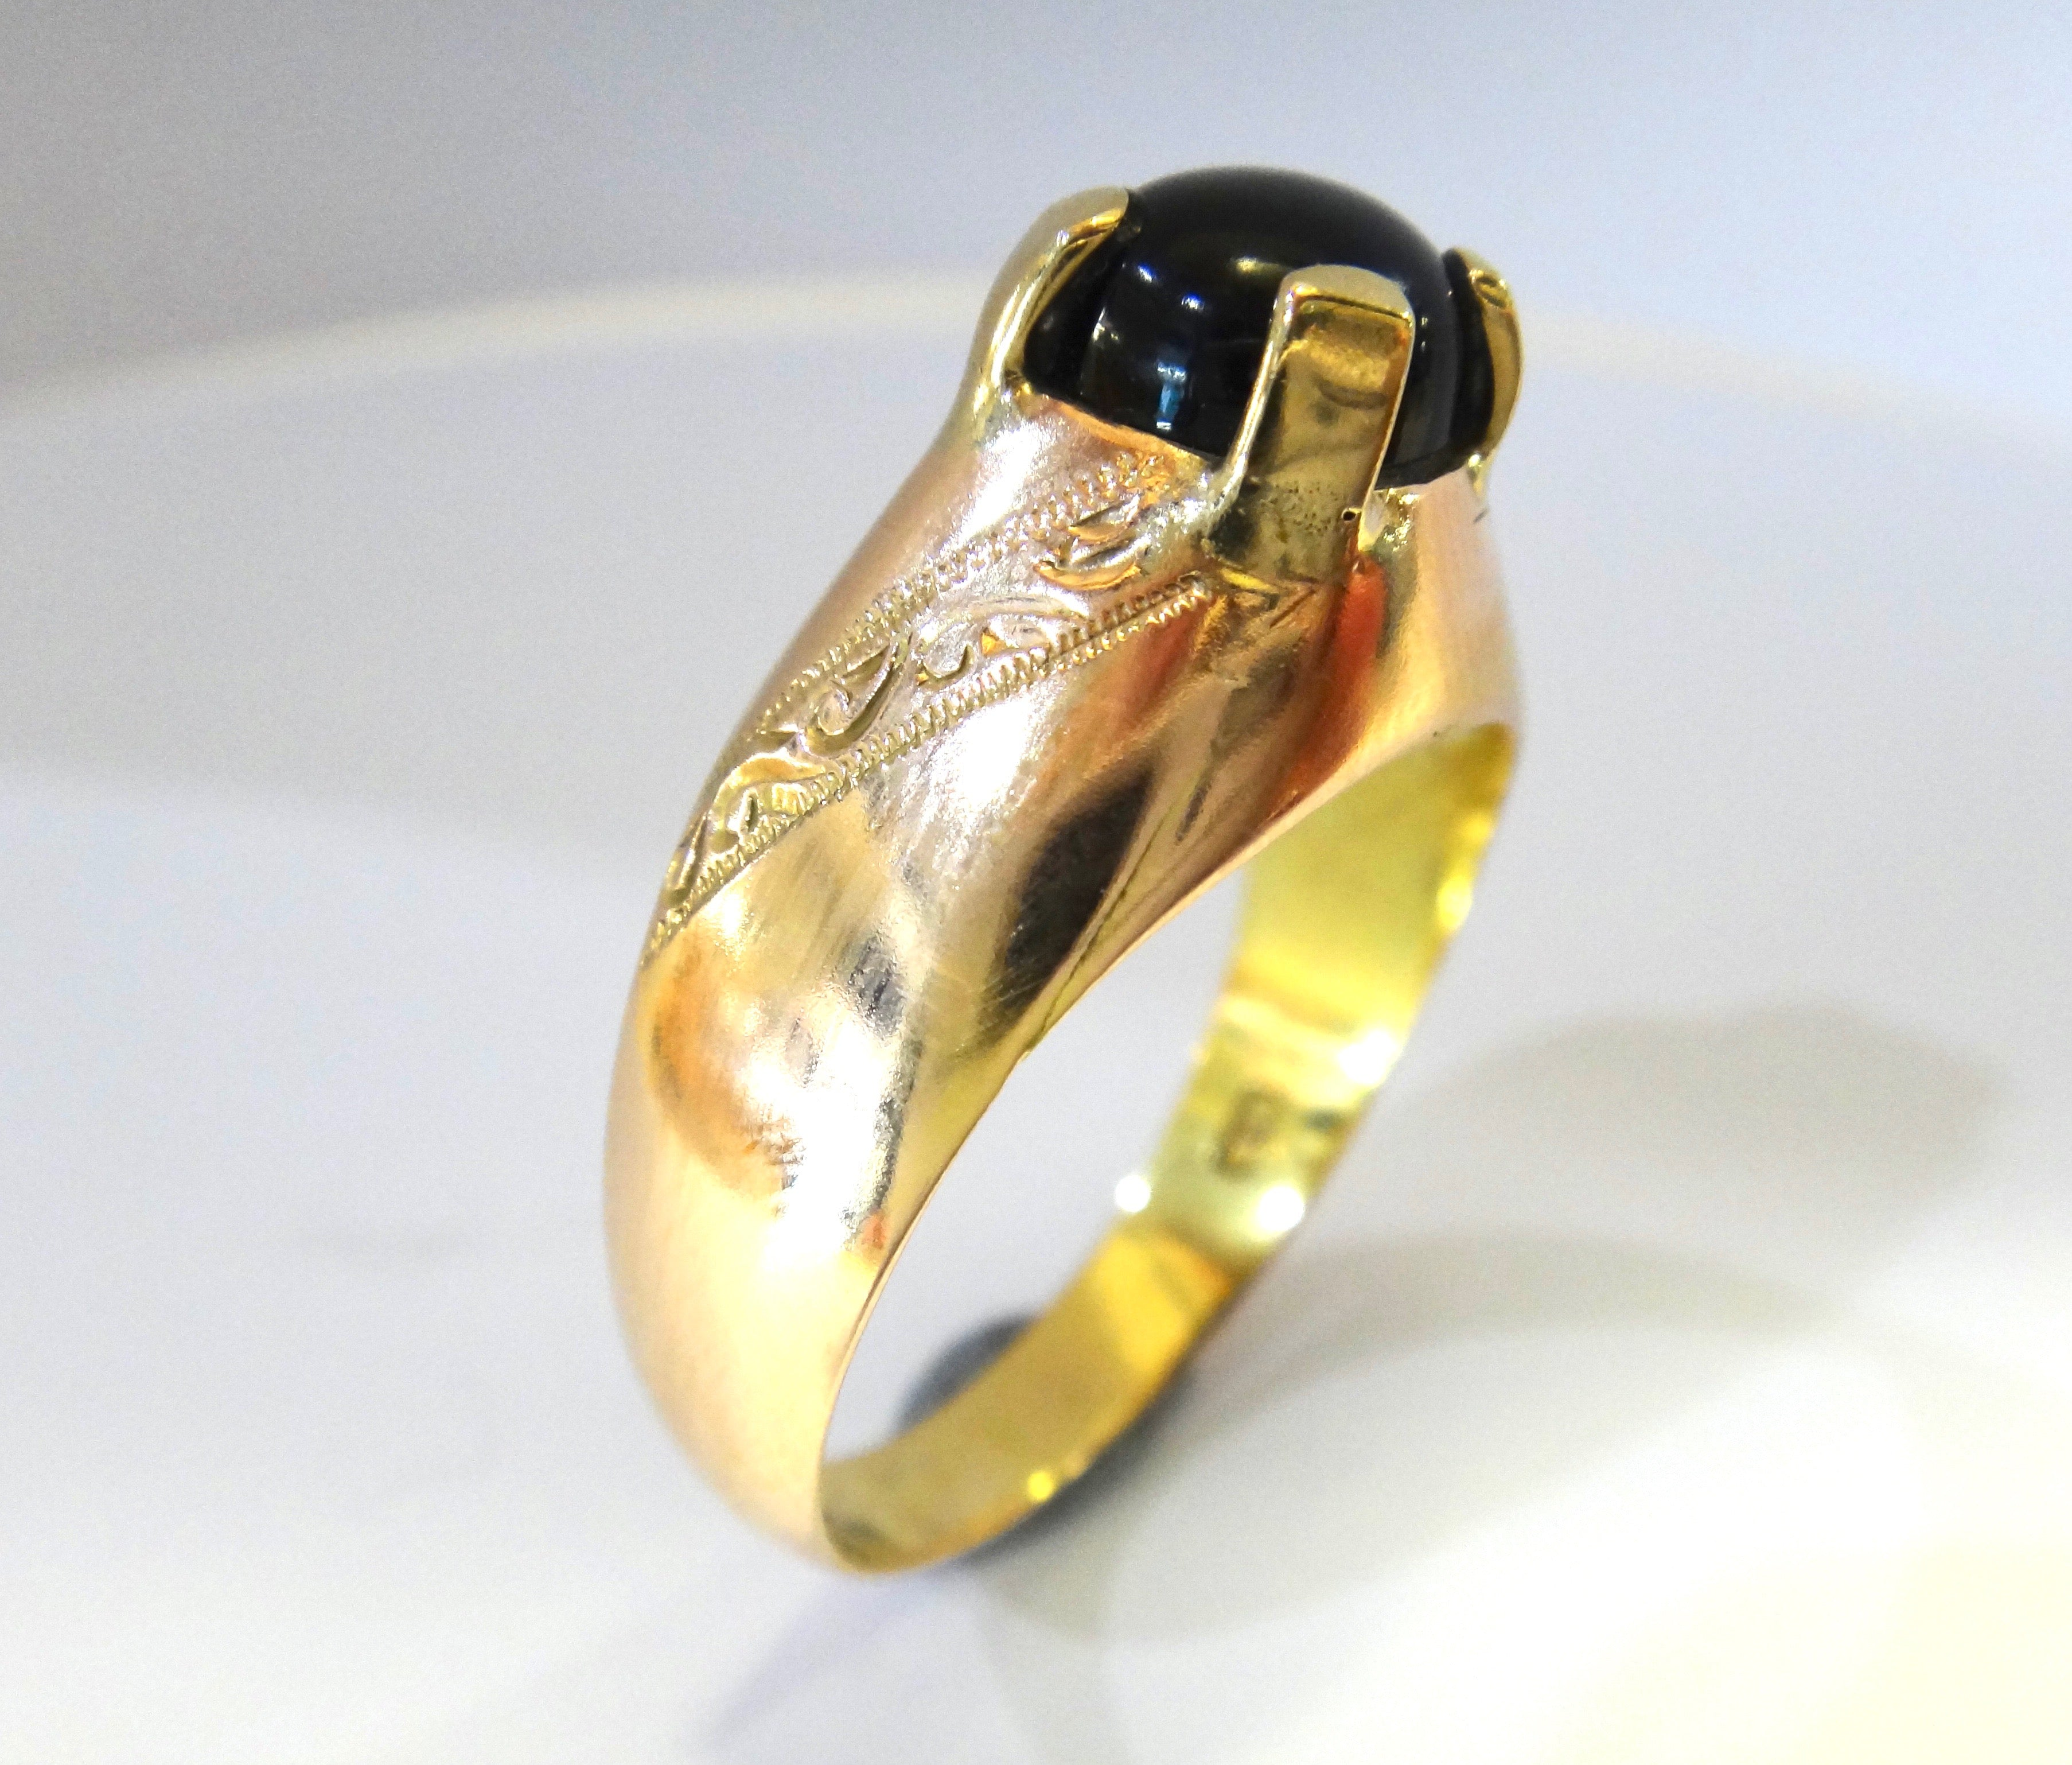 14CT Rose GOLD & Onyx Ring